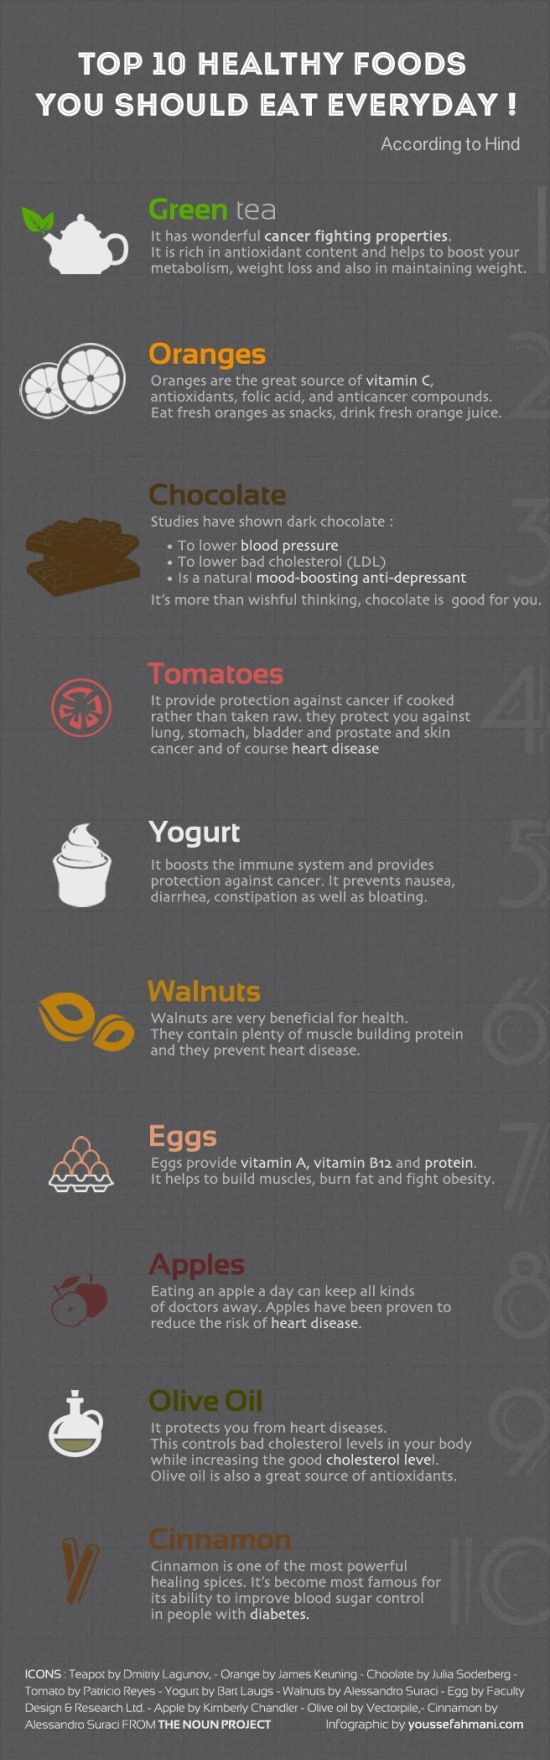 We found this infographic to be very interesting. So how about some yogurt for todays breakfast? Visit my site http://youtu.be/4yfEGZnJ96M #healthyfood #health #foods #food #diet #vitamins #supplements